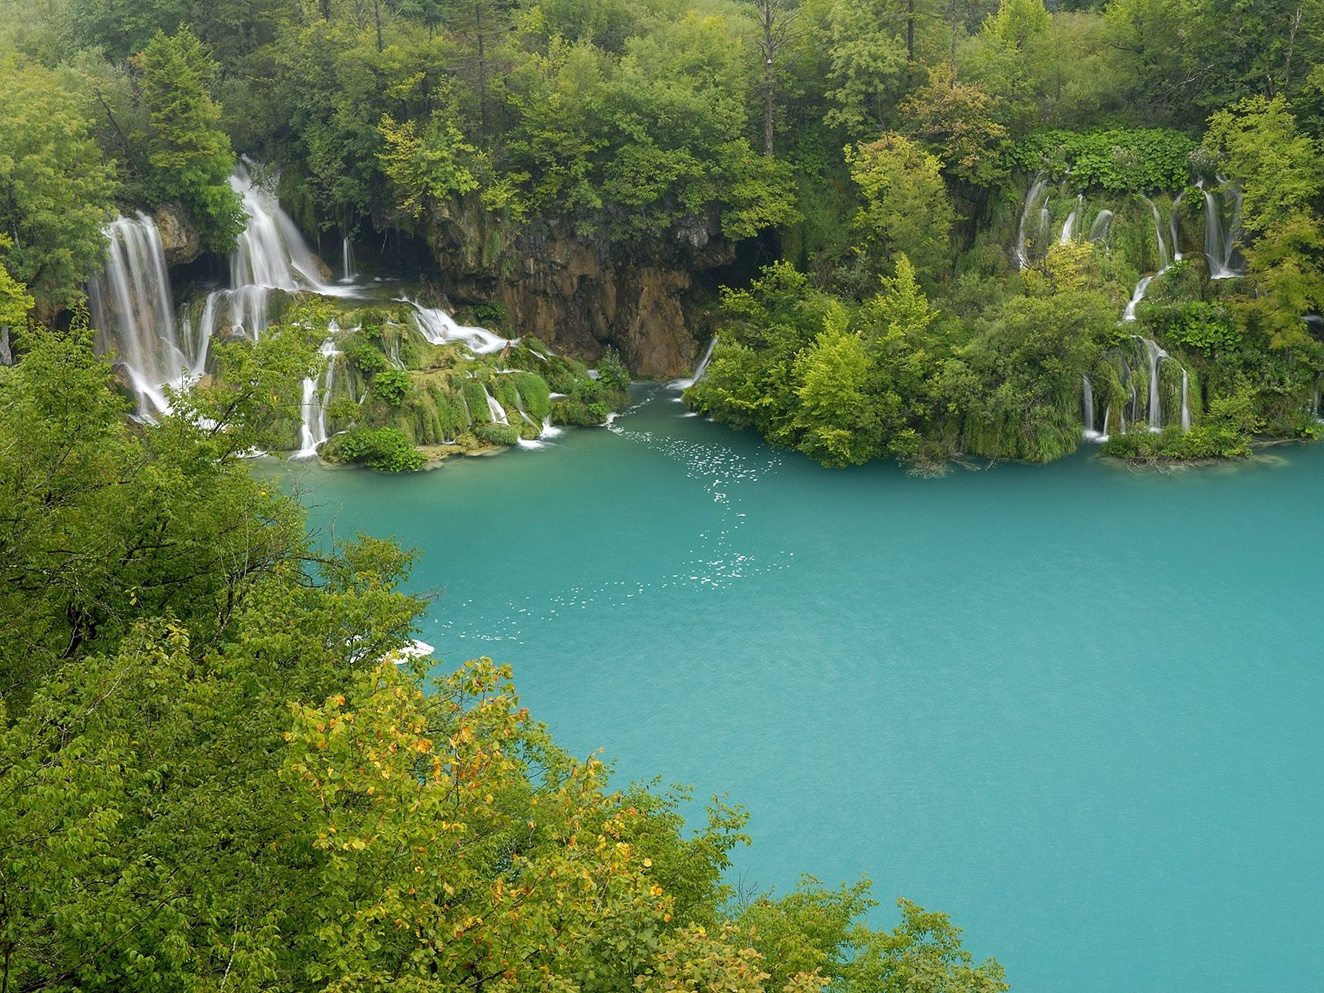 Plitvice-Lakes-National-Park-Croatia-falls-wallpaper